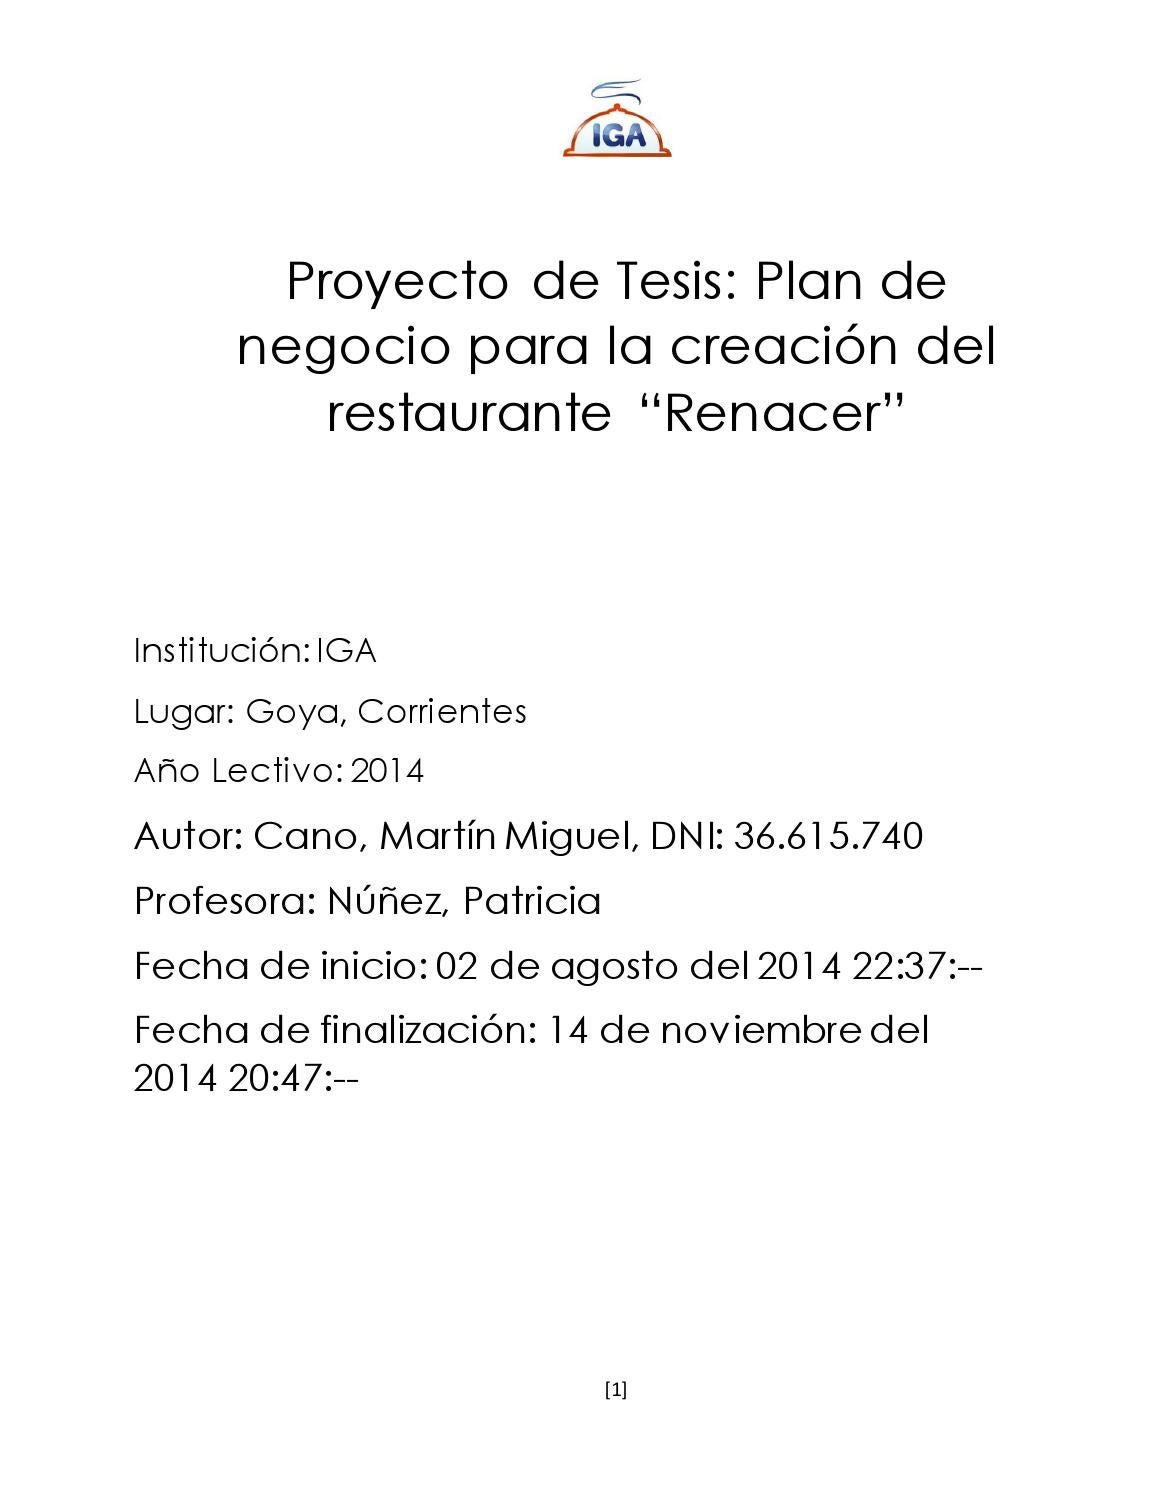 Tesis Restaurante Renacer by Martín M. Cano - issuu